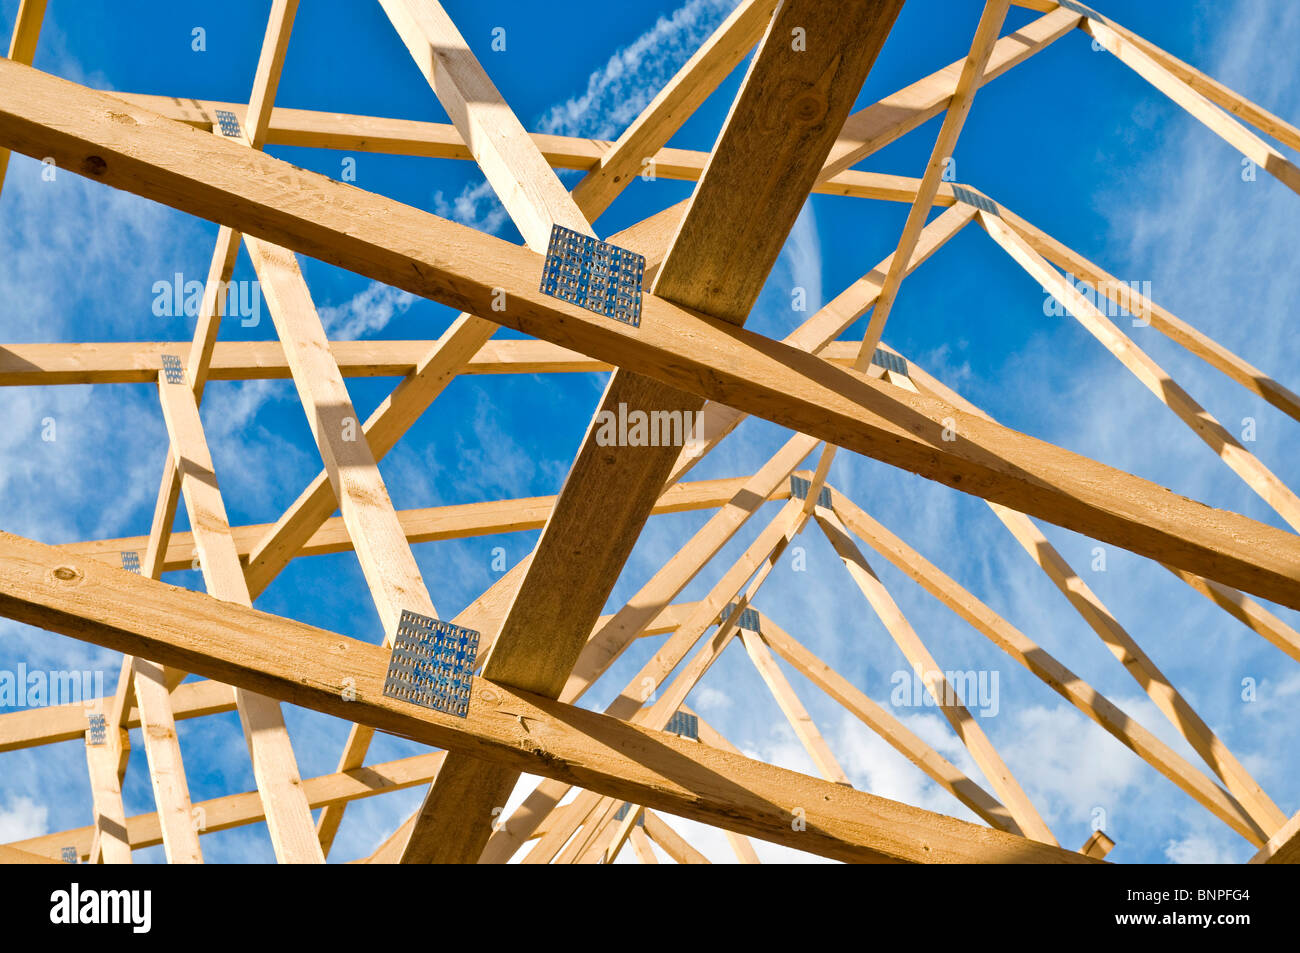 New house construction / prefabricated roof A-frames  - Indre-et-Loire, France. Stock Photo